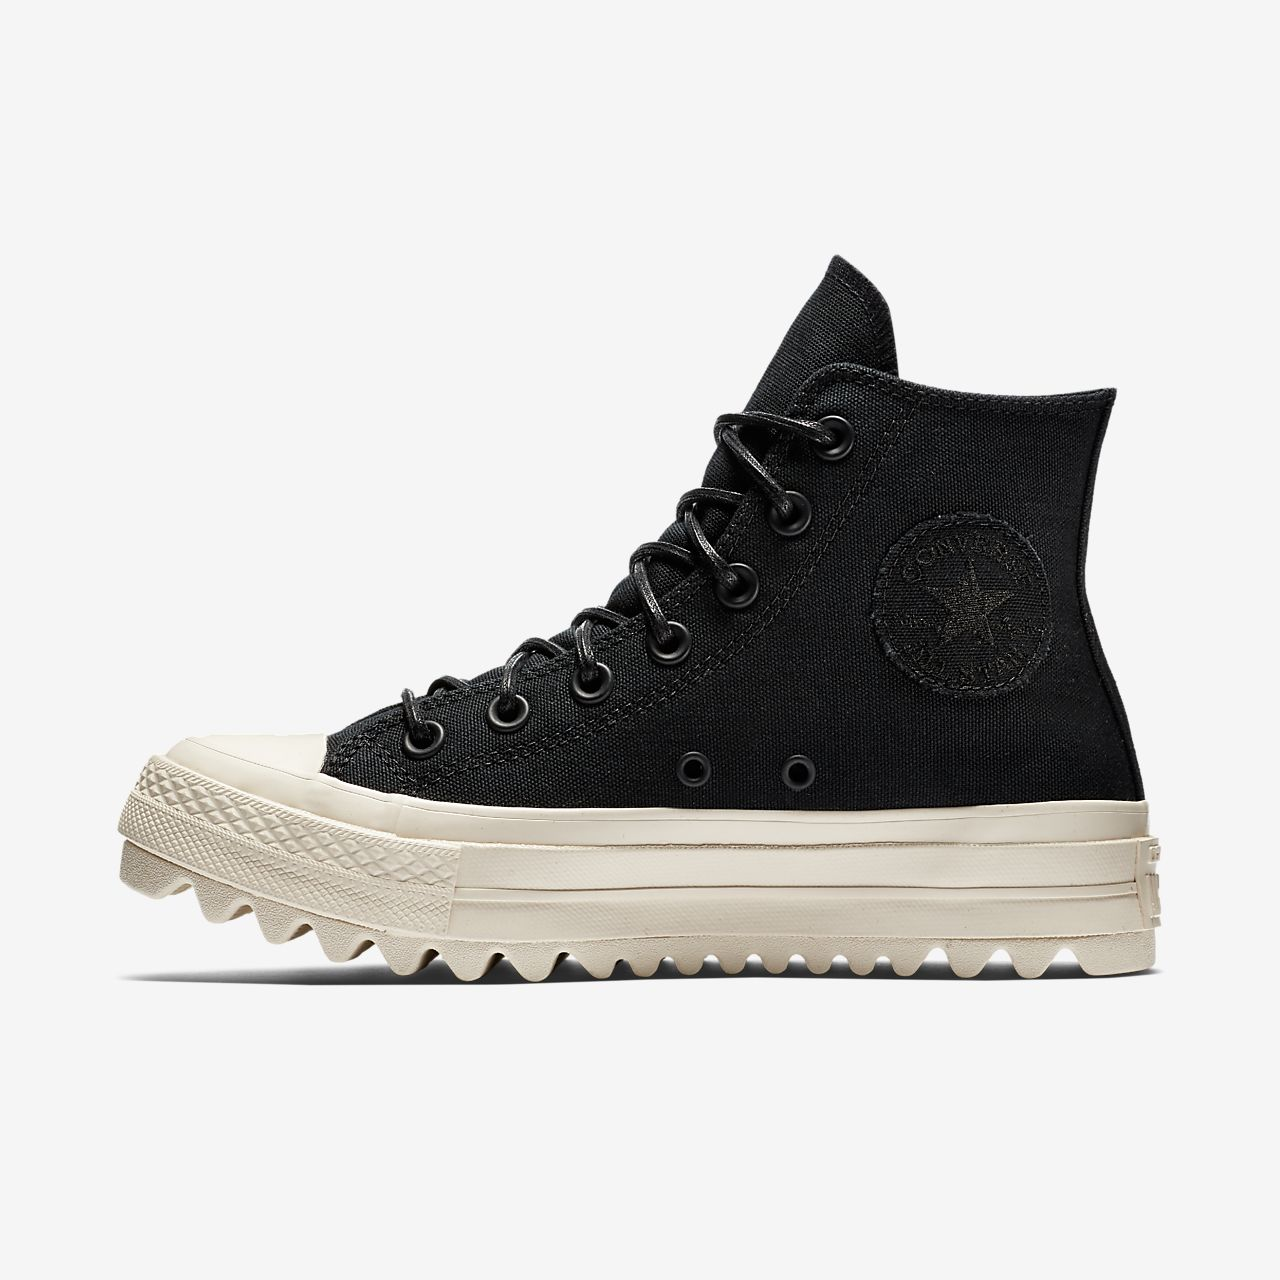 converse chuck taylor all star lift ripple